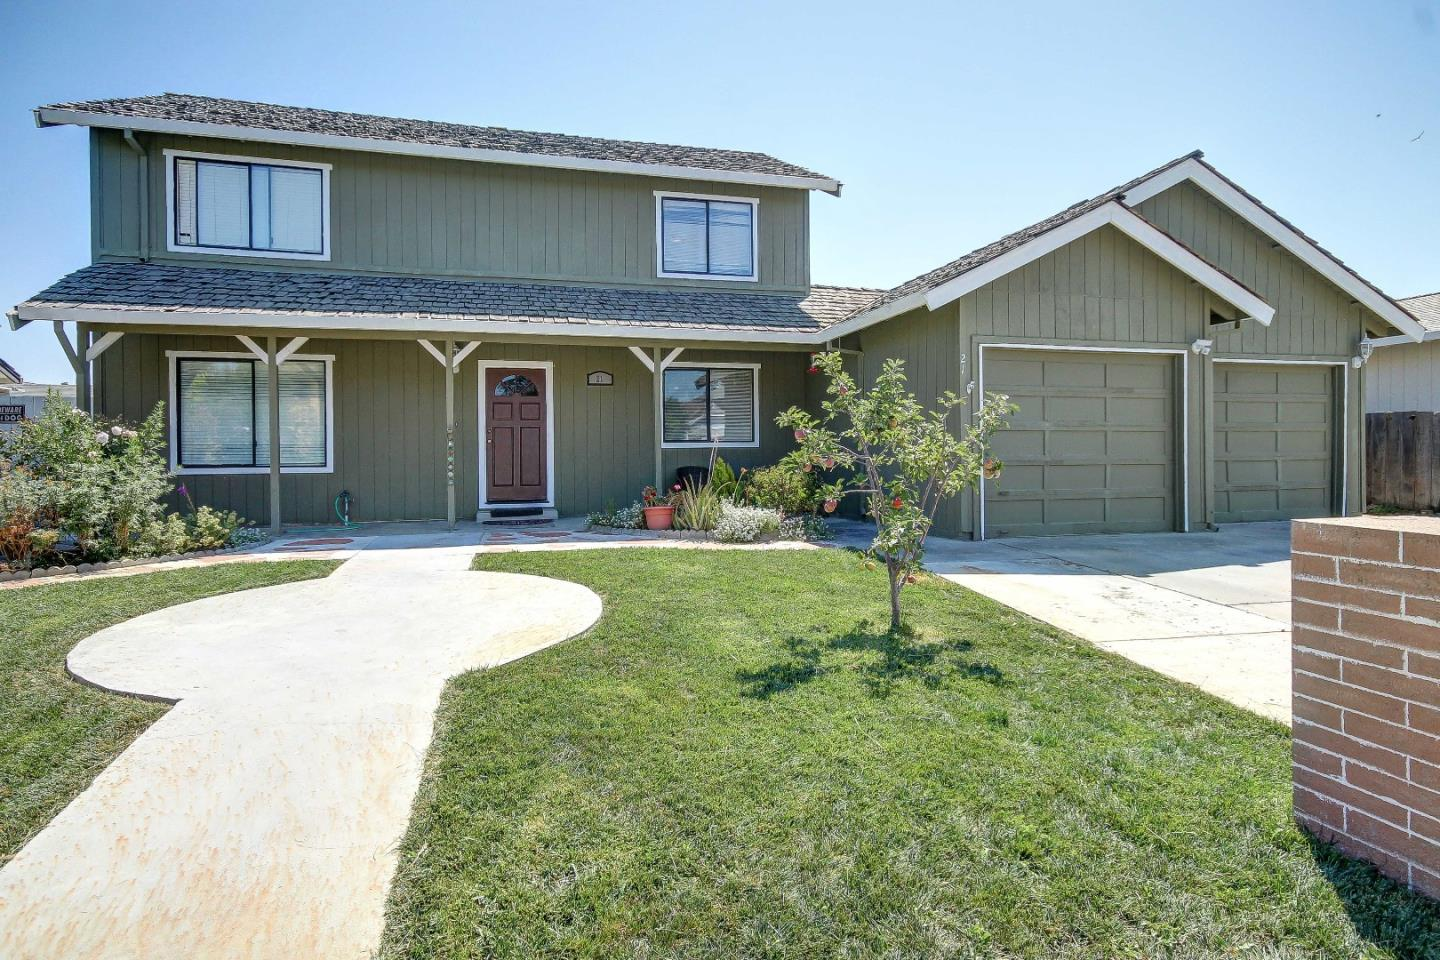 21 Brandy Court, Hollister, CA 95023